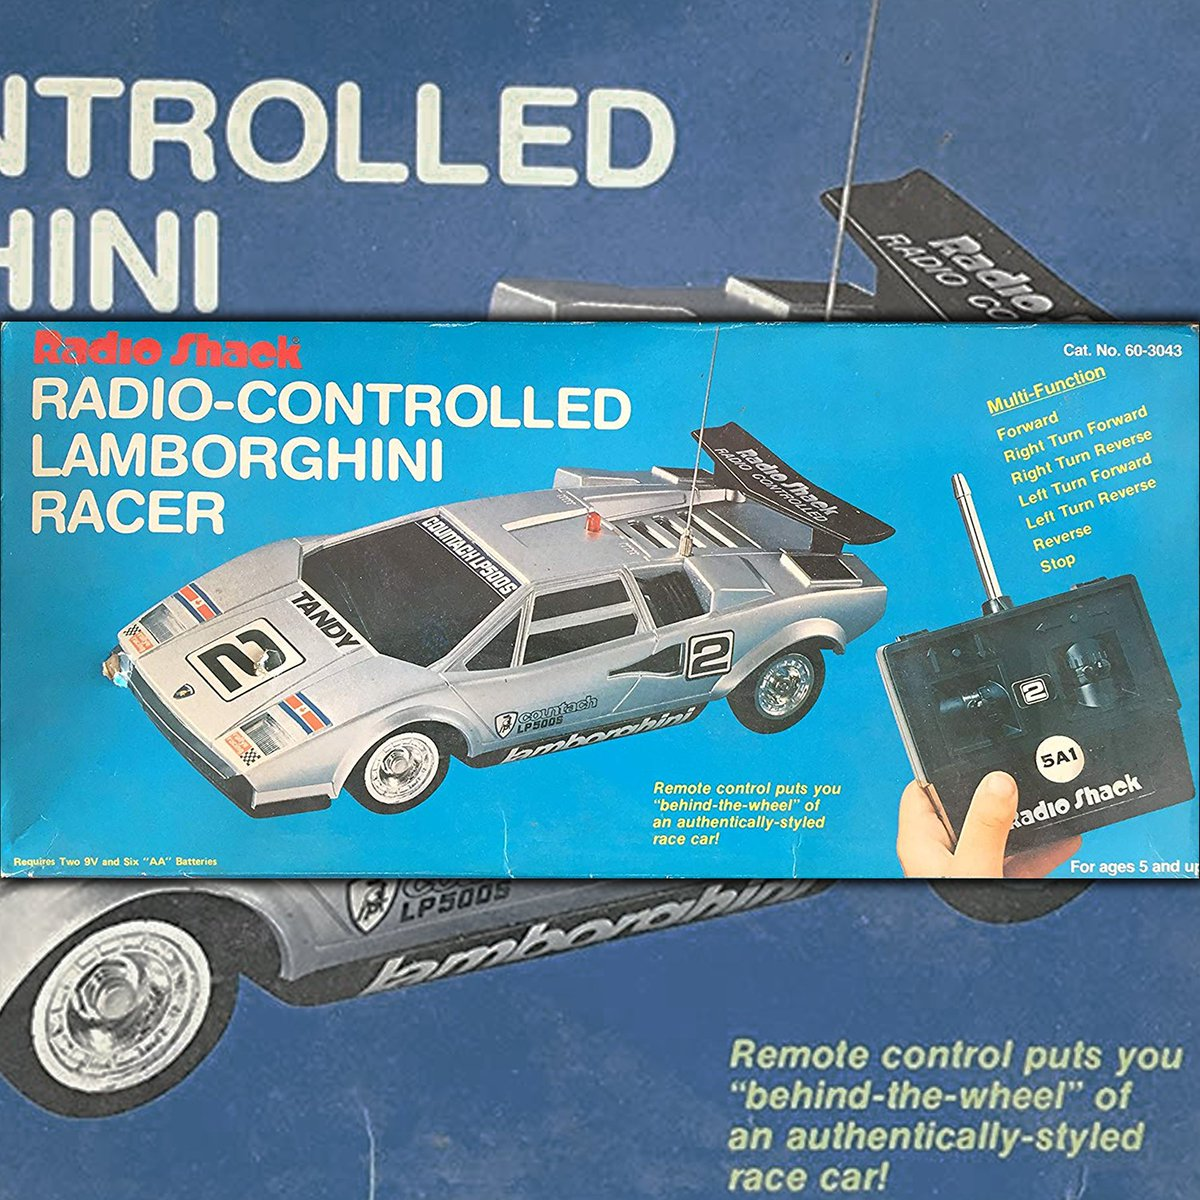 Radioshack Twitter Being In To Radio Control Since The Mid 70 S Countach Lp500s Was Roadster Have Back 1970s It Came Multiple Colors Featured Working Headlights Full Function Controls